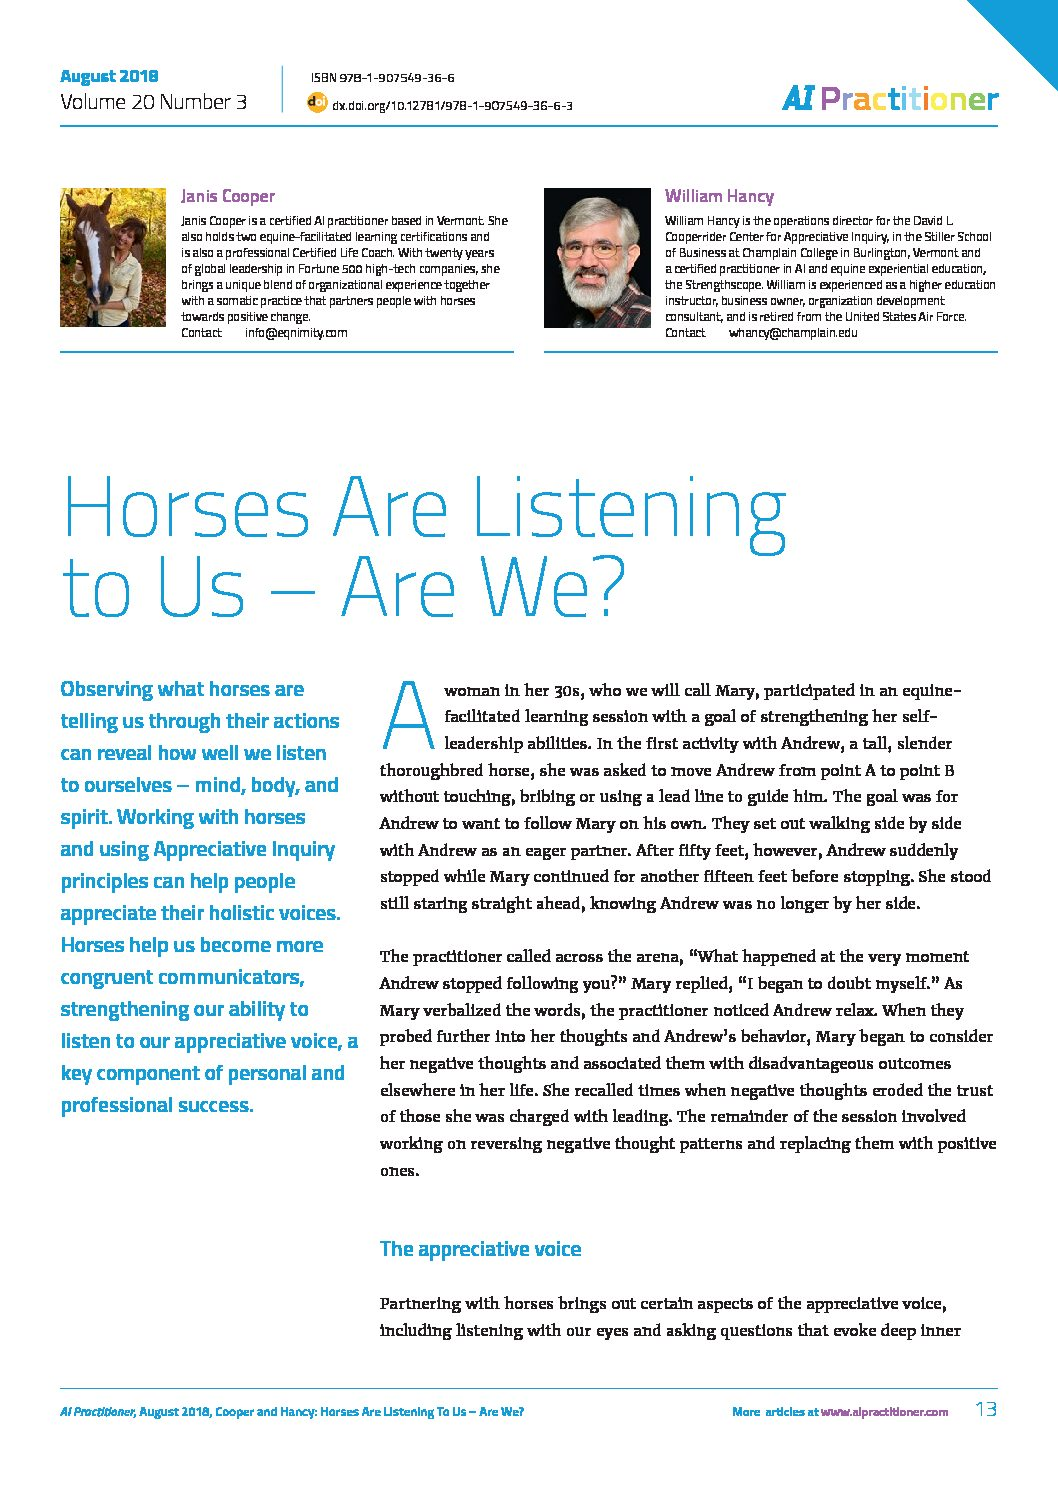 aip-august18-appreciative-voice-horses-and-ai - AI Practitioner